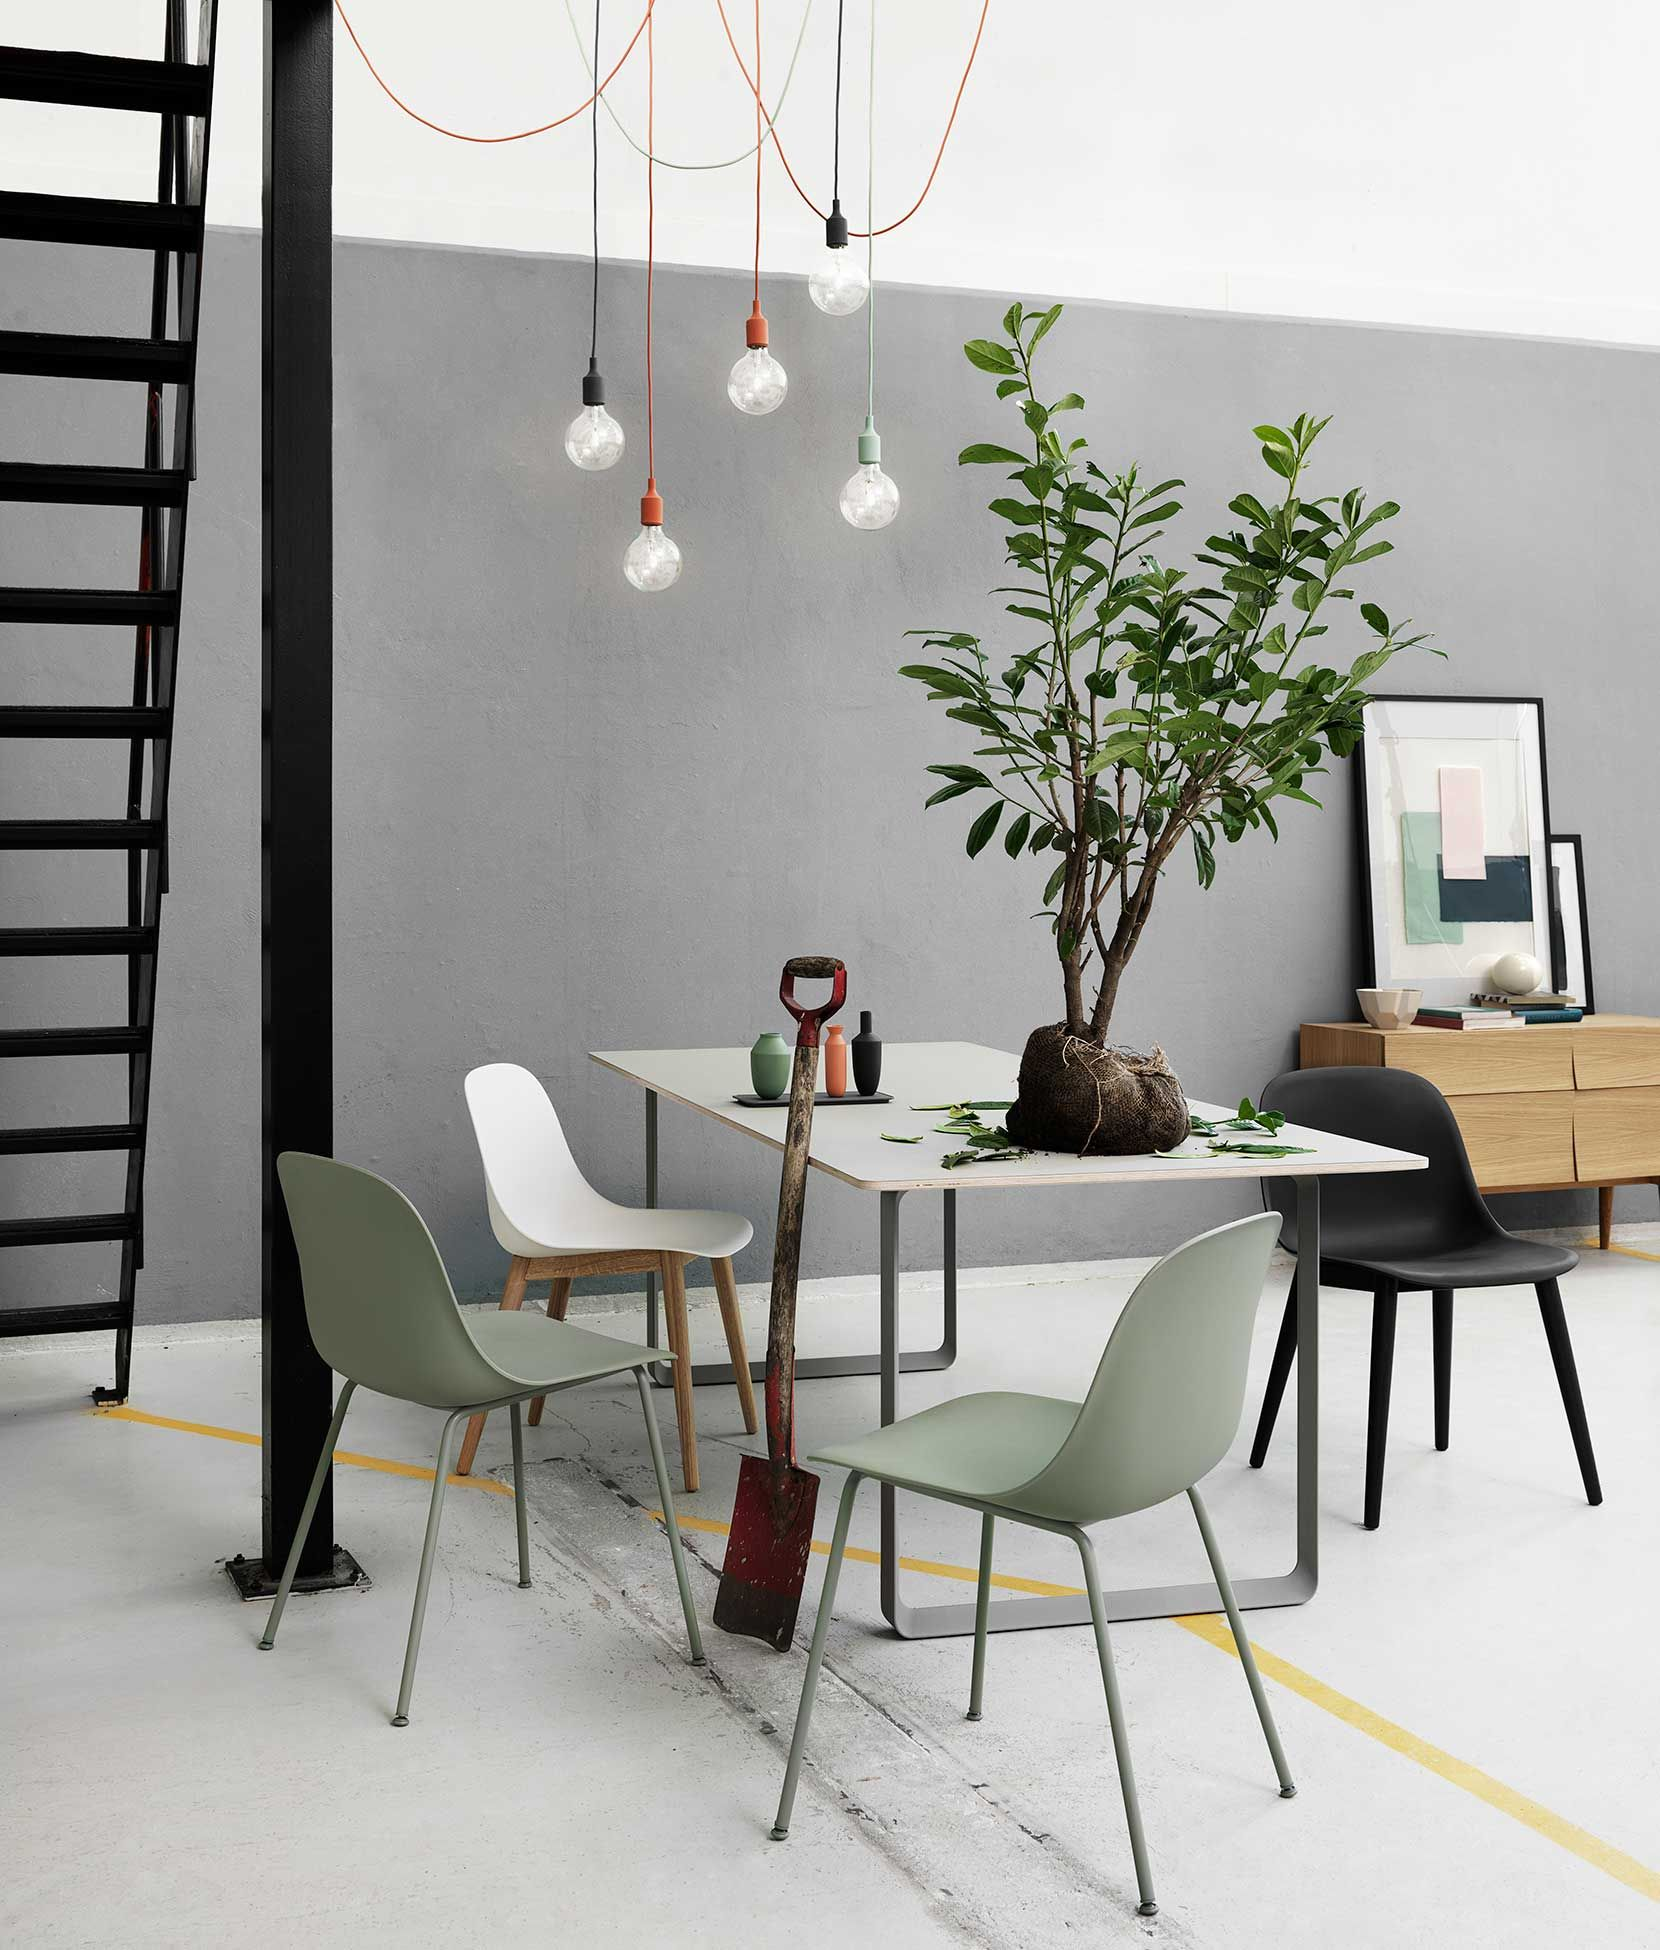 Industrial design meets scandinavian simplicity with muutos e27 pendant lamp by designer mattias ståhlbom muuto scandinaviandesign lighting